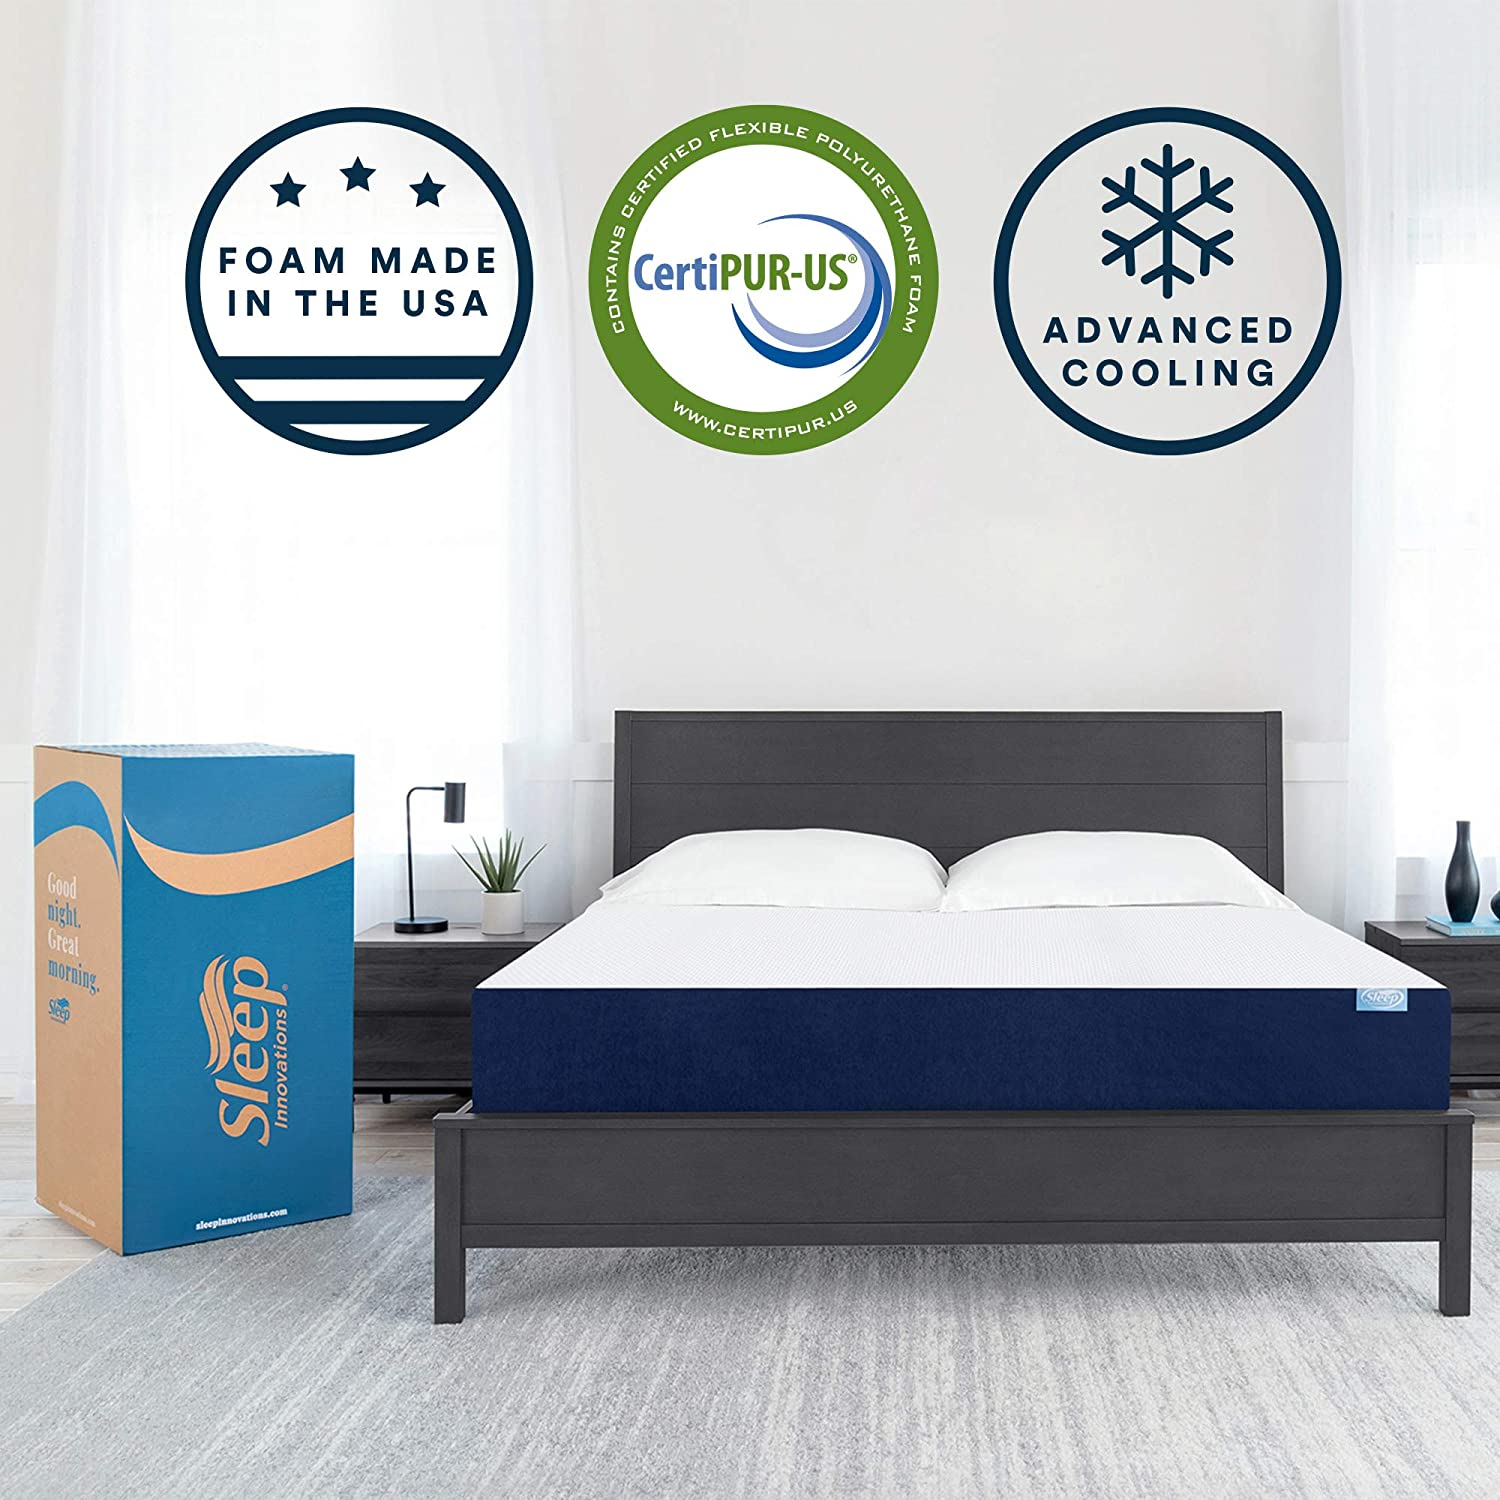 Top 10 Best Memory Foam Mattress (2020 Review & Buying Guide) 8